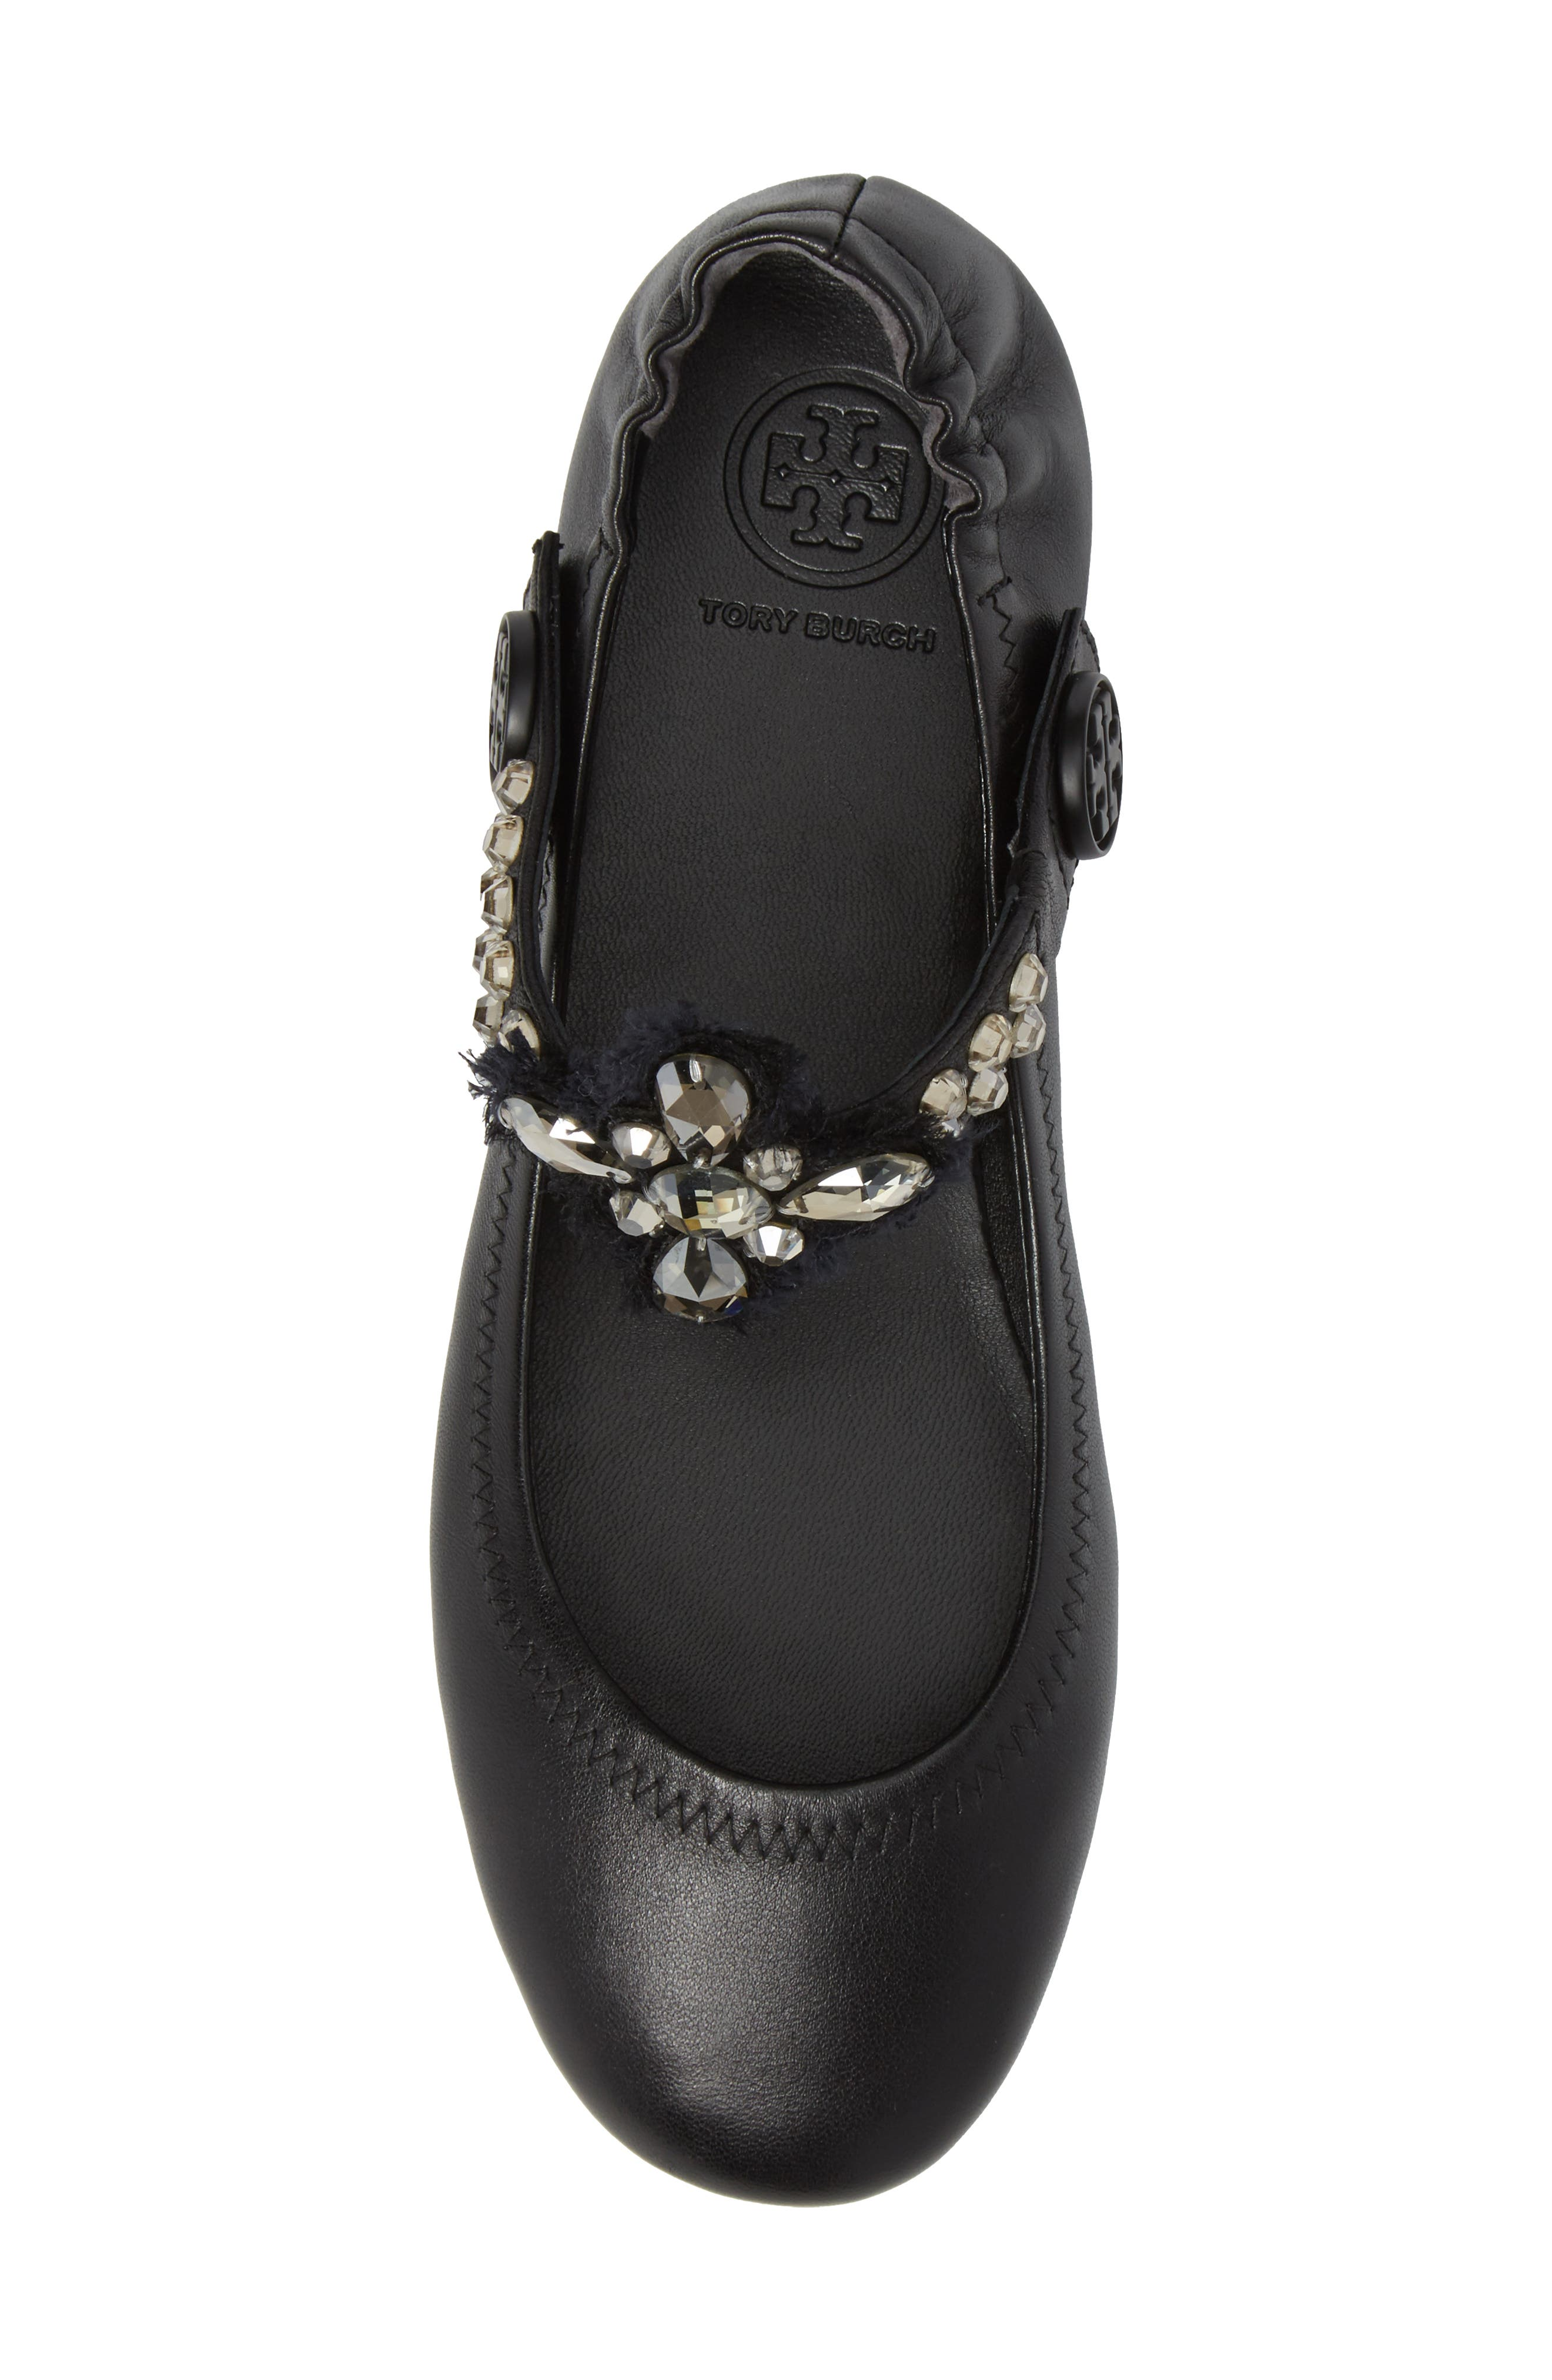 Minnie Embellished Convertible Strap Ballet Flat,                             Alternate thumbnail 6, color,                             019